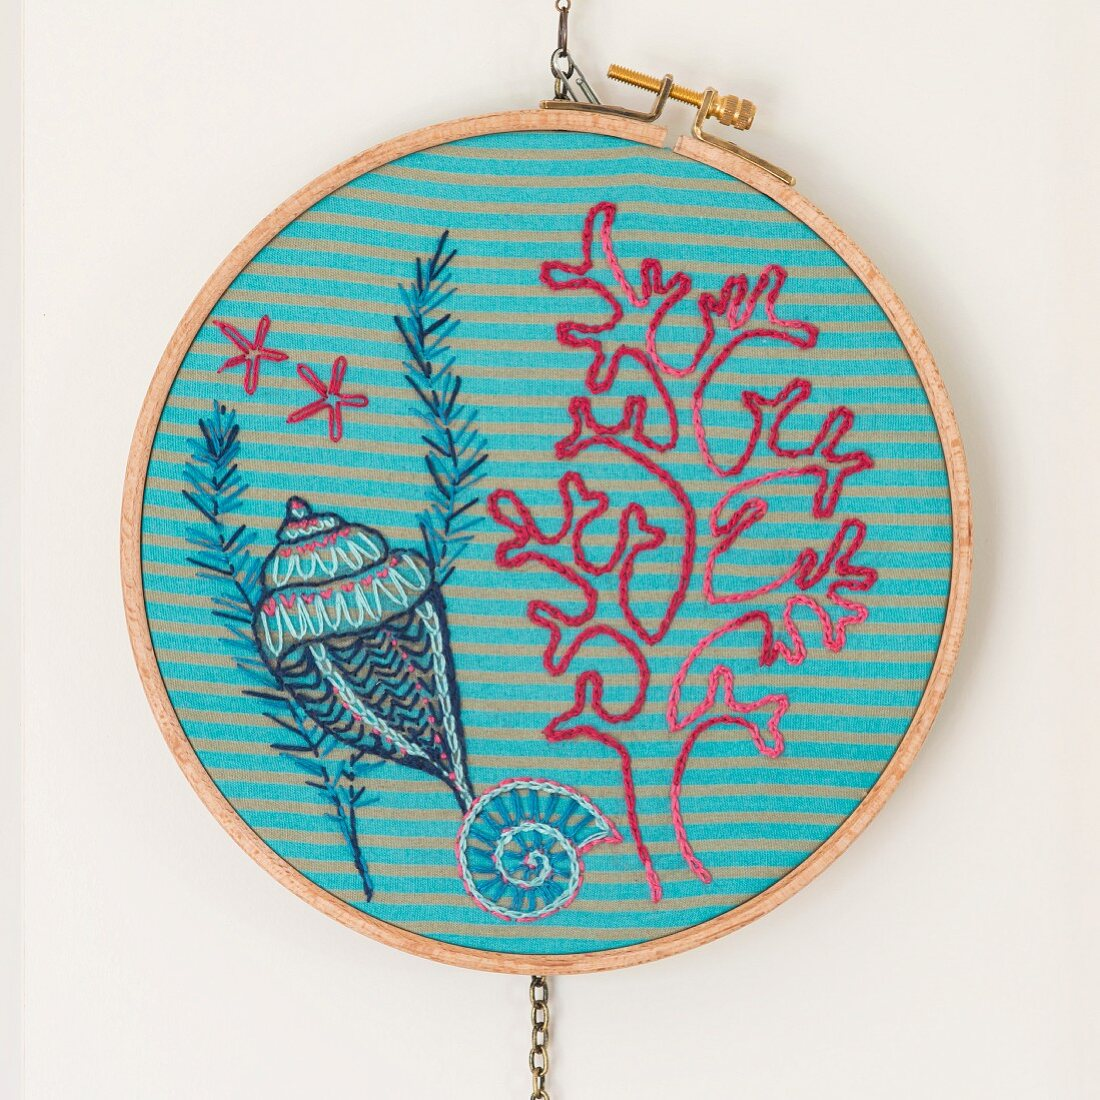 An embroidery frame with a maritime picture